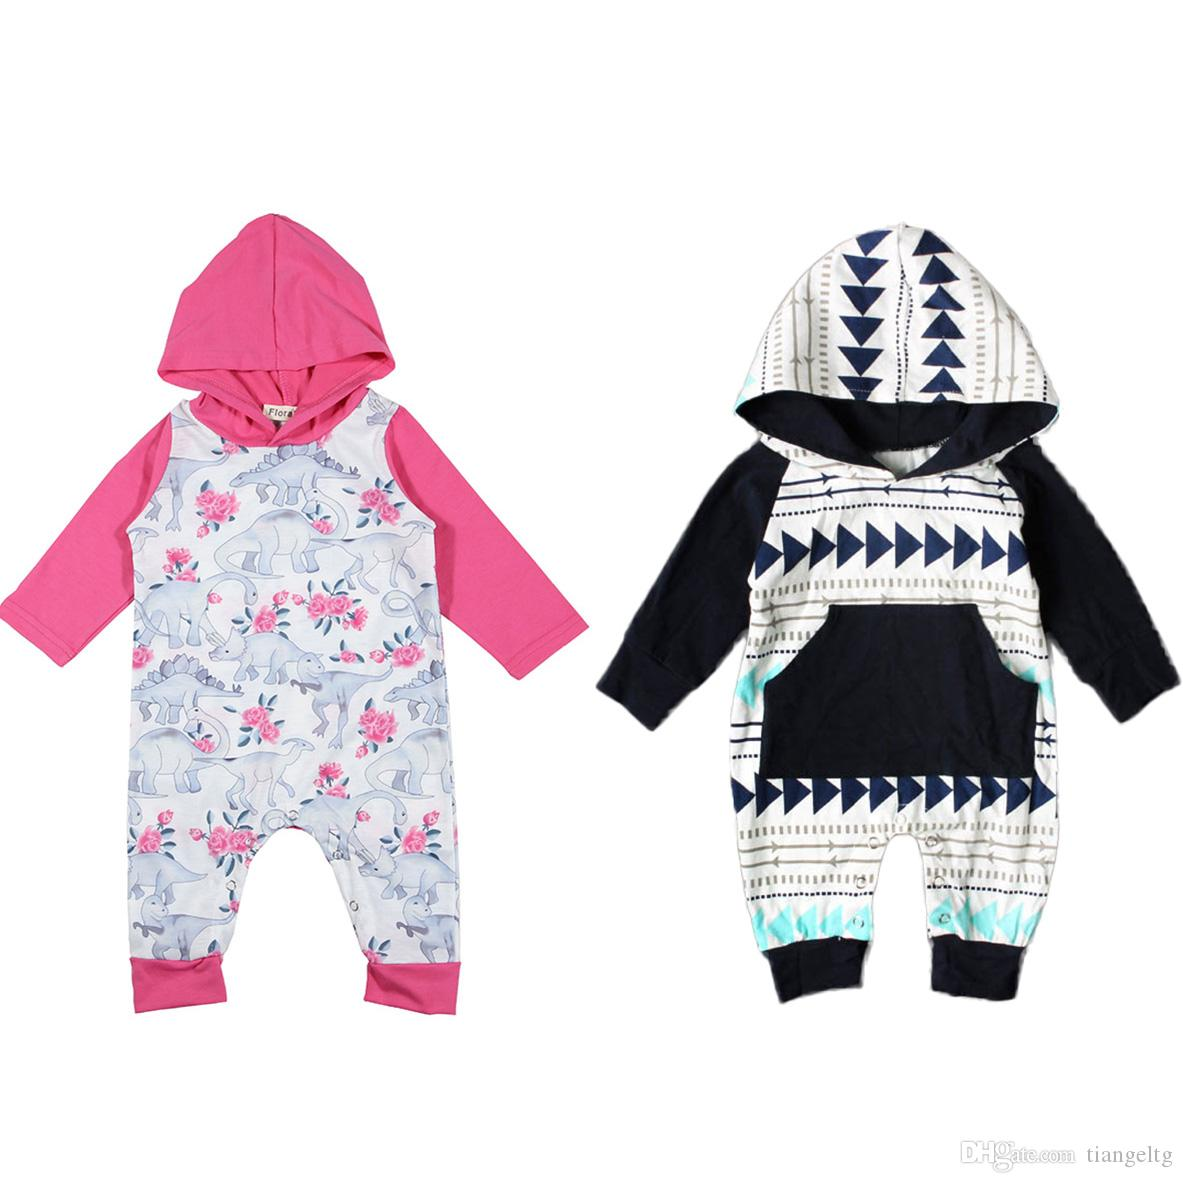 52613ff13dd4 Baby Dinosaur Hooded Rompers Boys Girls Jumpsuits with Hat Floral Striped  Cartoon Printed Hoodies Cotton Blending Spring Autumn 3-24M Dinosaur  Hoodies ...